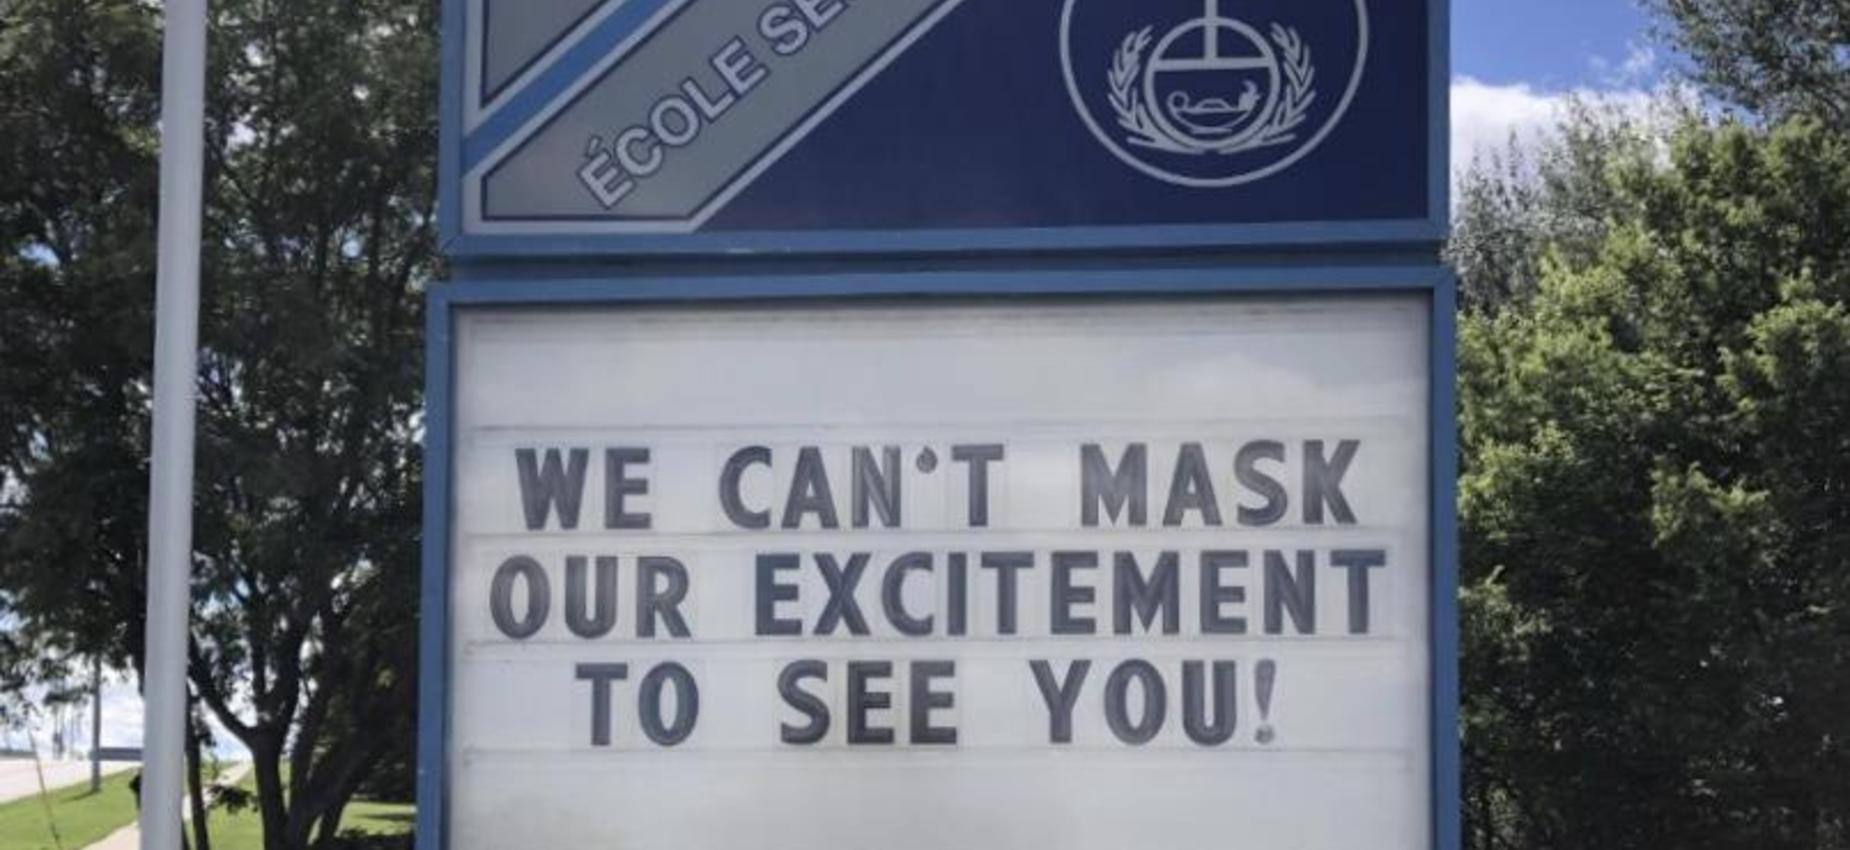 SMHS can't mask our excitement to see you!